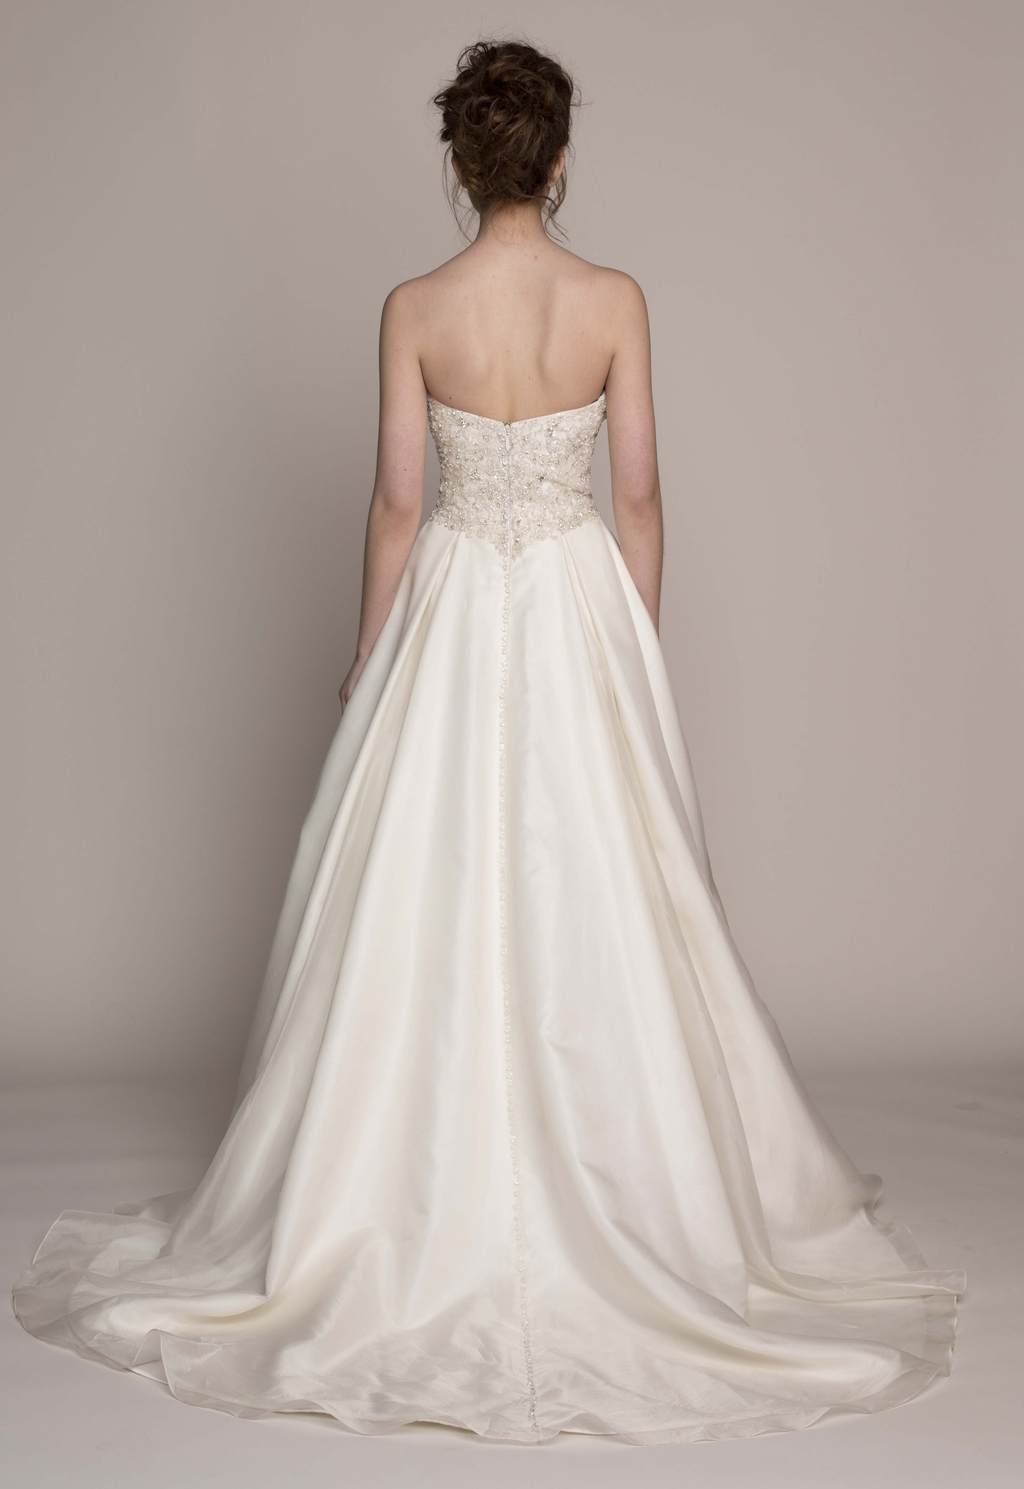 Kelly Faetanini Wedding Dress 2014 Spring Bridal Gown